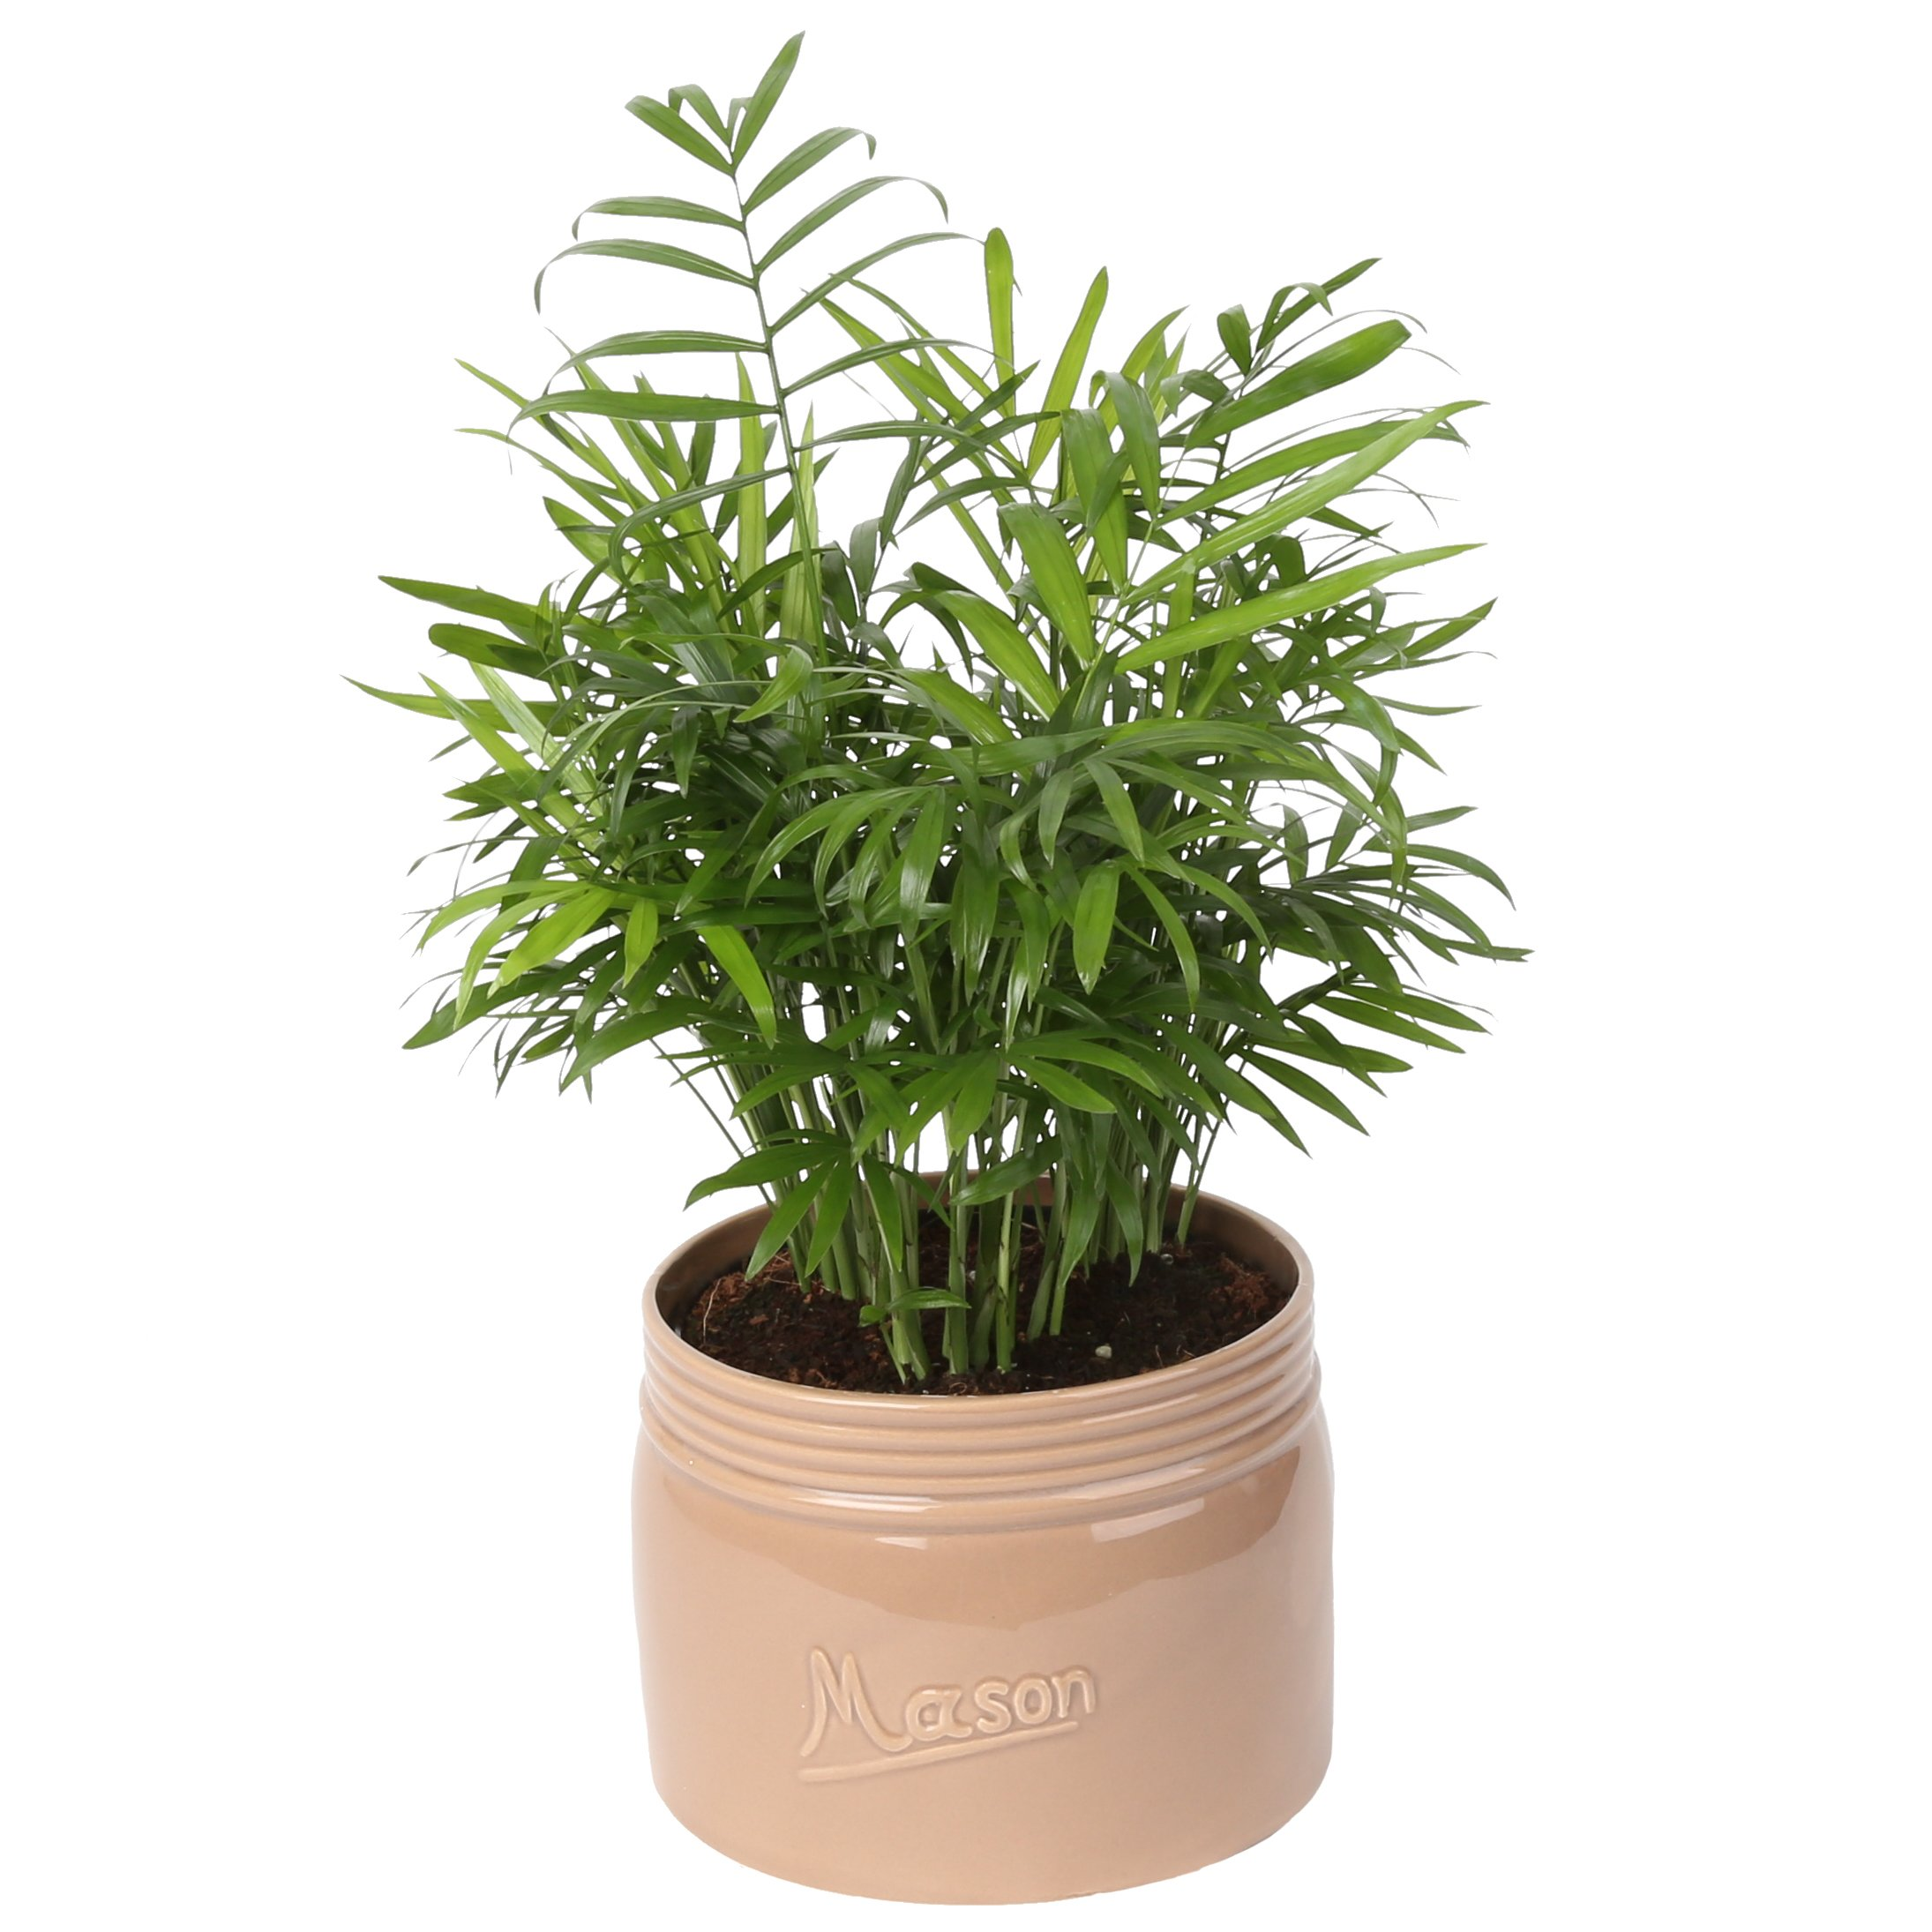 Costa Farms Neanthe Bella Parlor Palm, Live Indoor Tabletop Plant in Home Decor 6-inch Mason Jar Ceramic, Great for Gifts